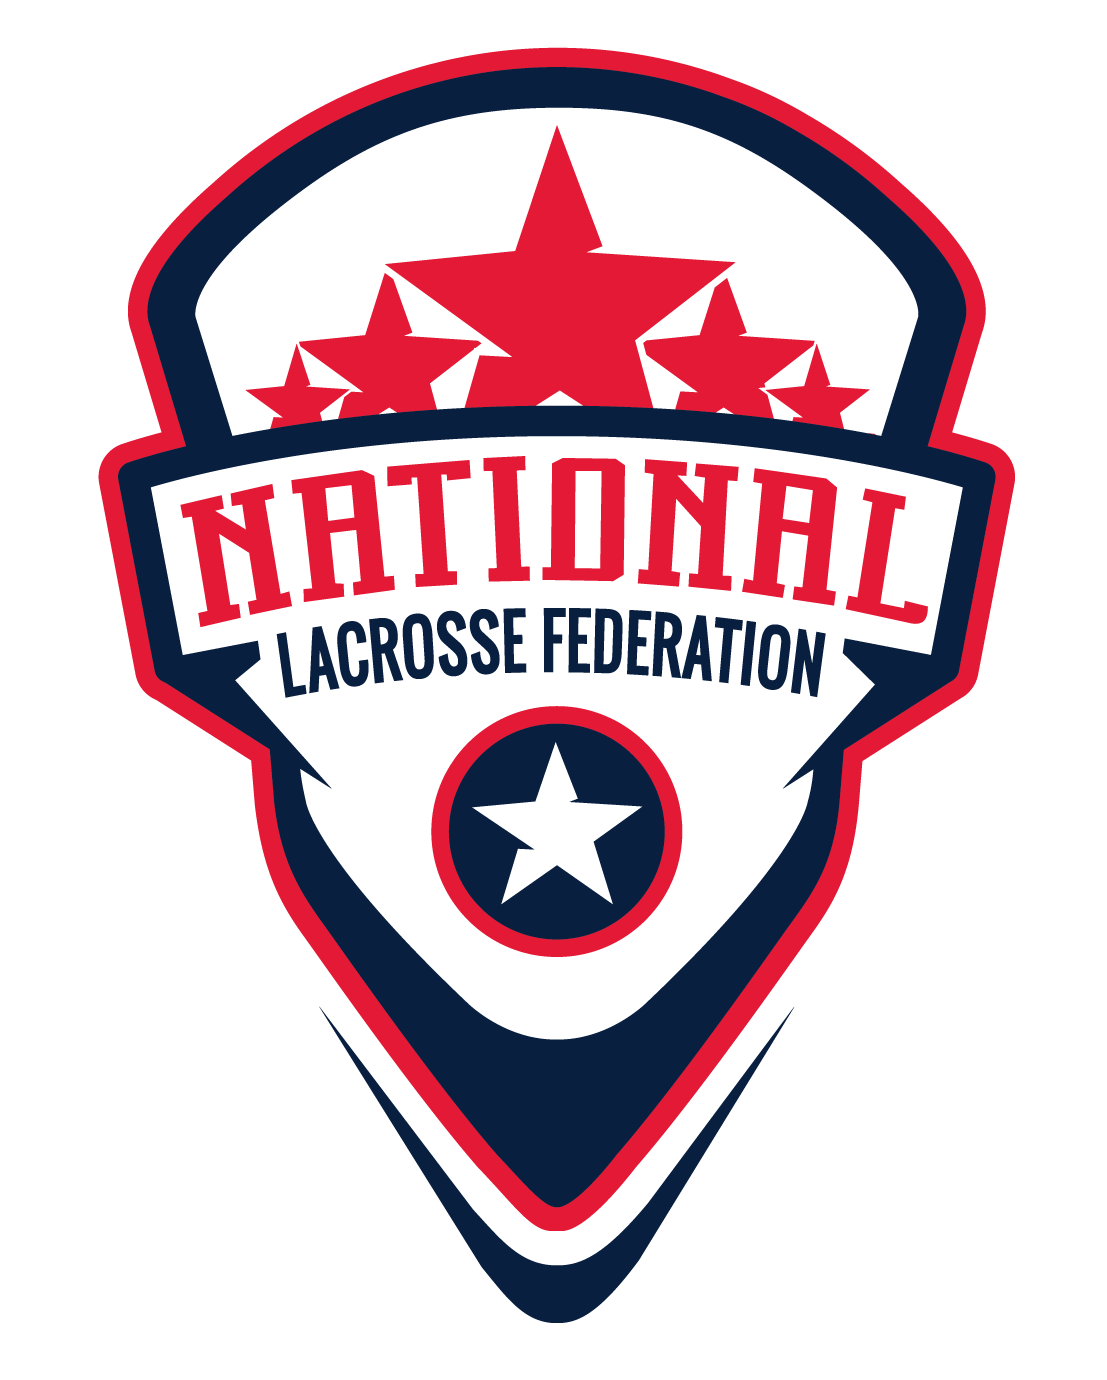 the National All Star Games Lacrosse Event is affiliated with the National Lacrosse Federation